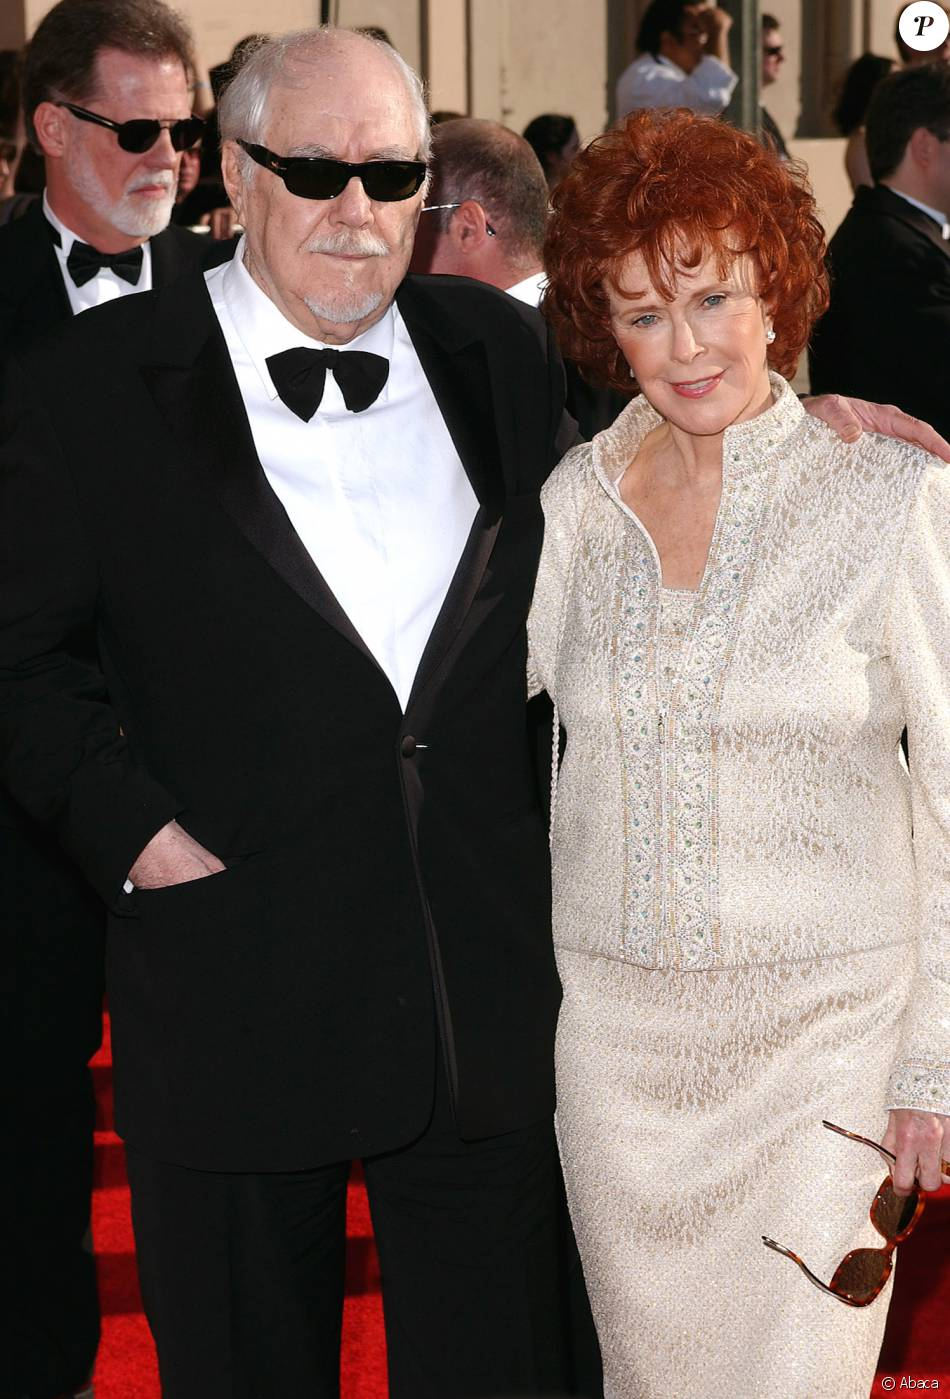 Robert Altman et sa femme Kathryn aux Sreen Actors Guild Awards 2002